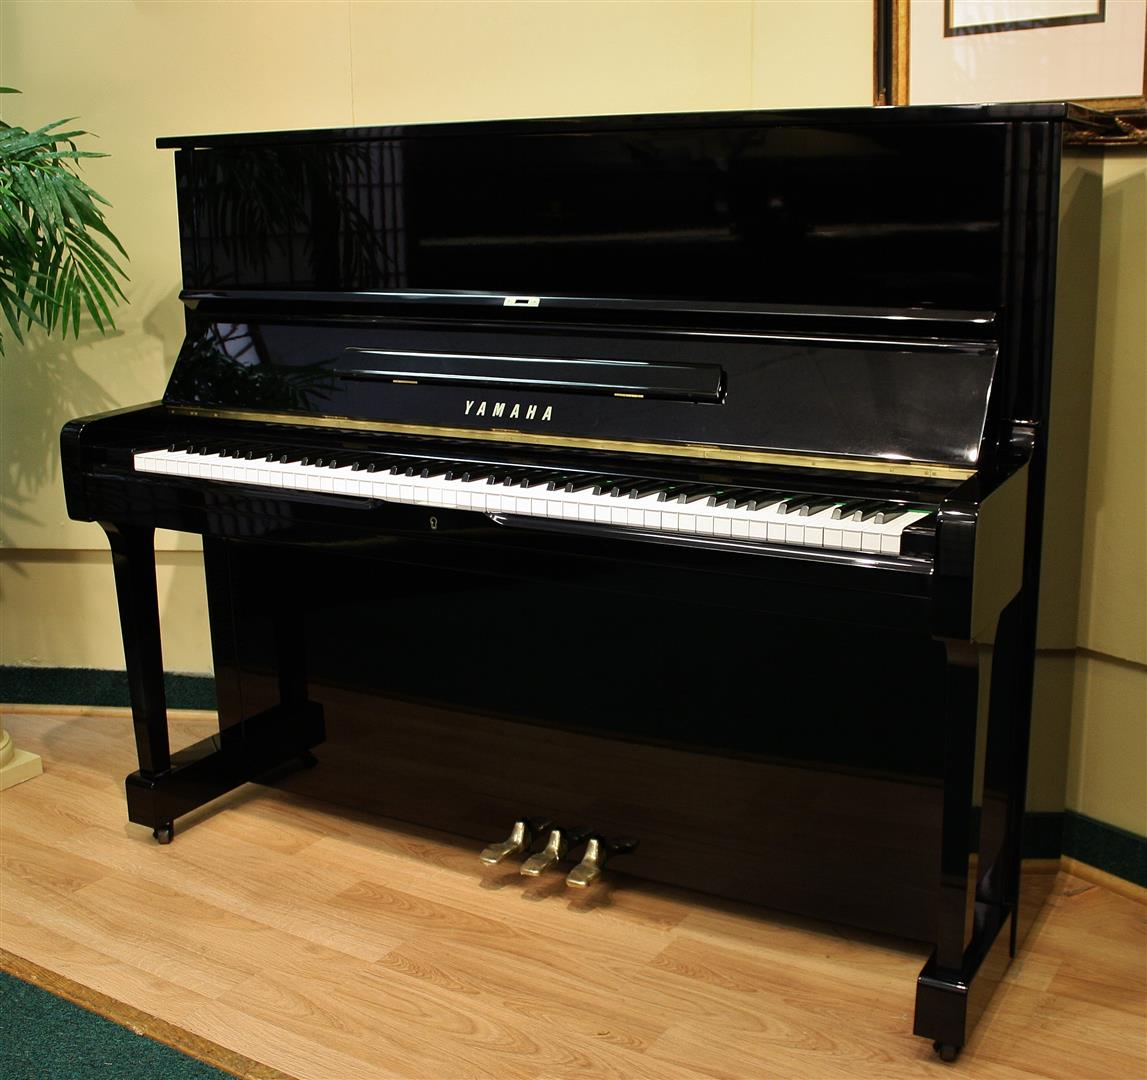 four star reconditoned yamaha yamaha u1 upright piano 48